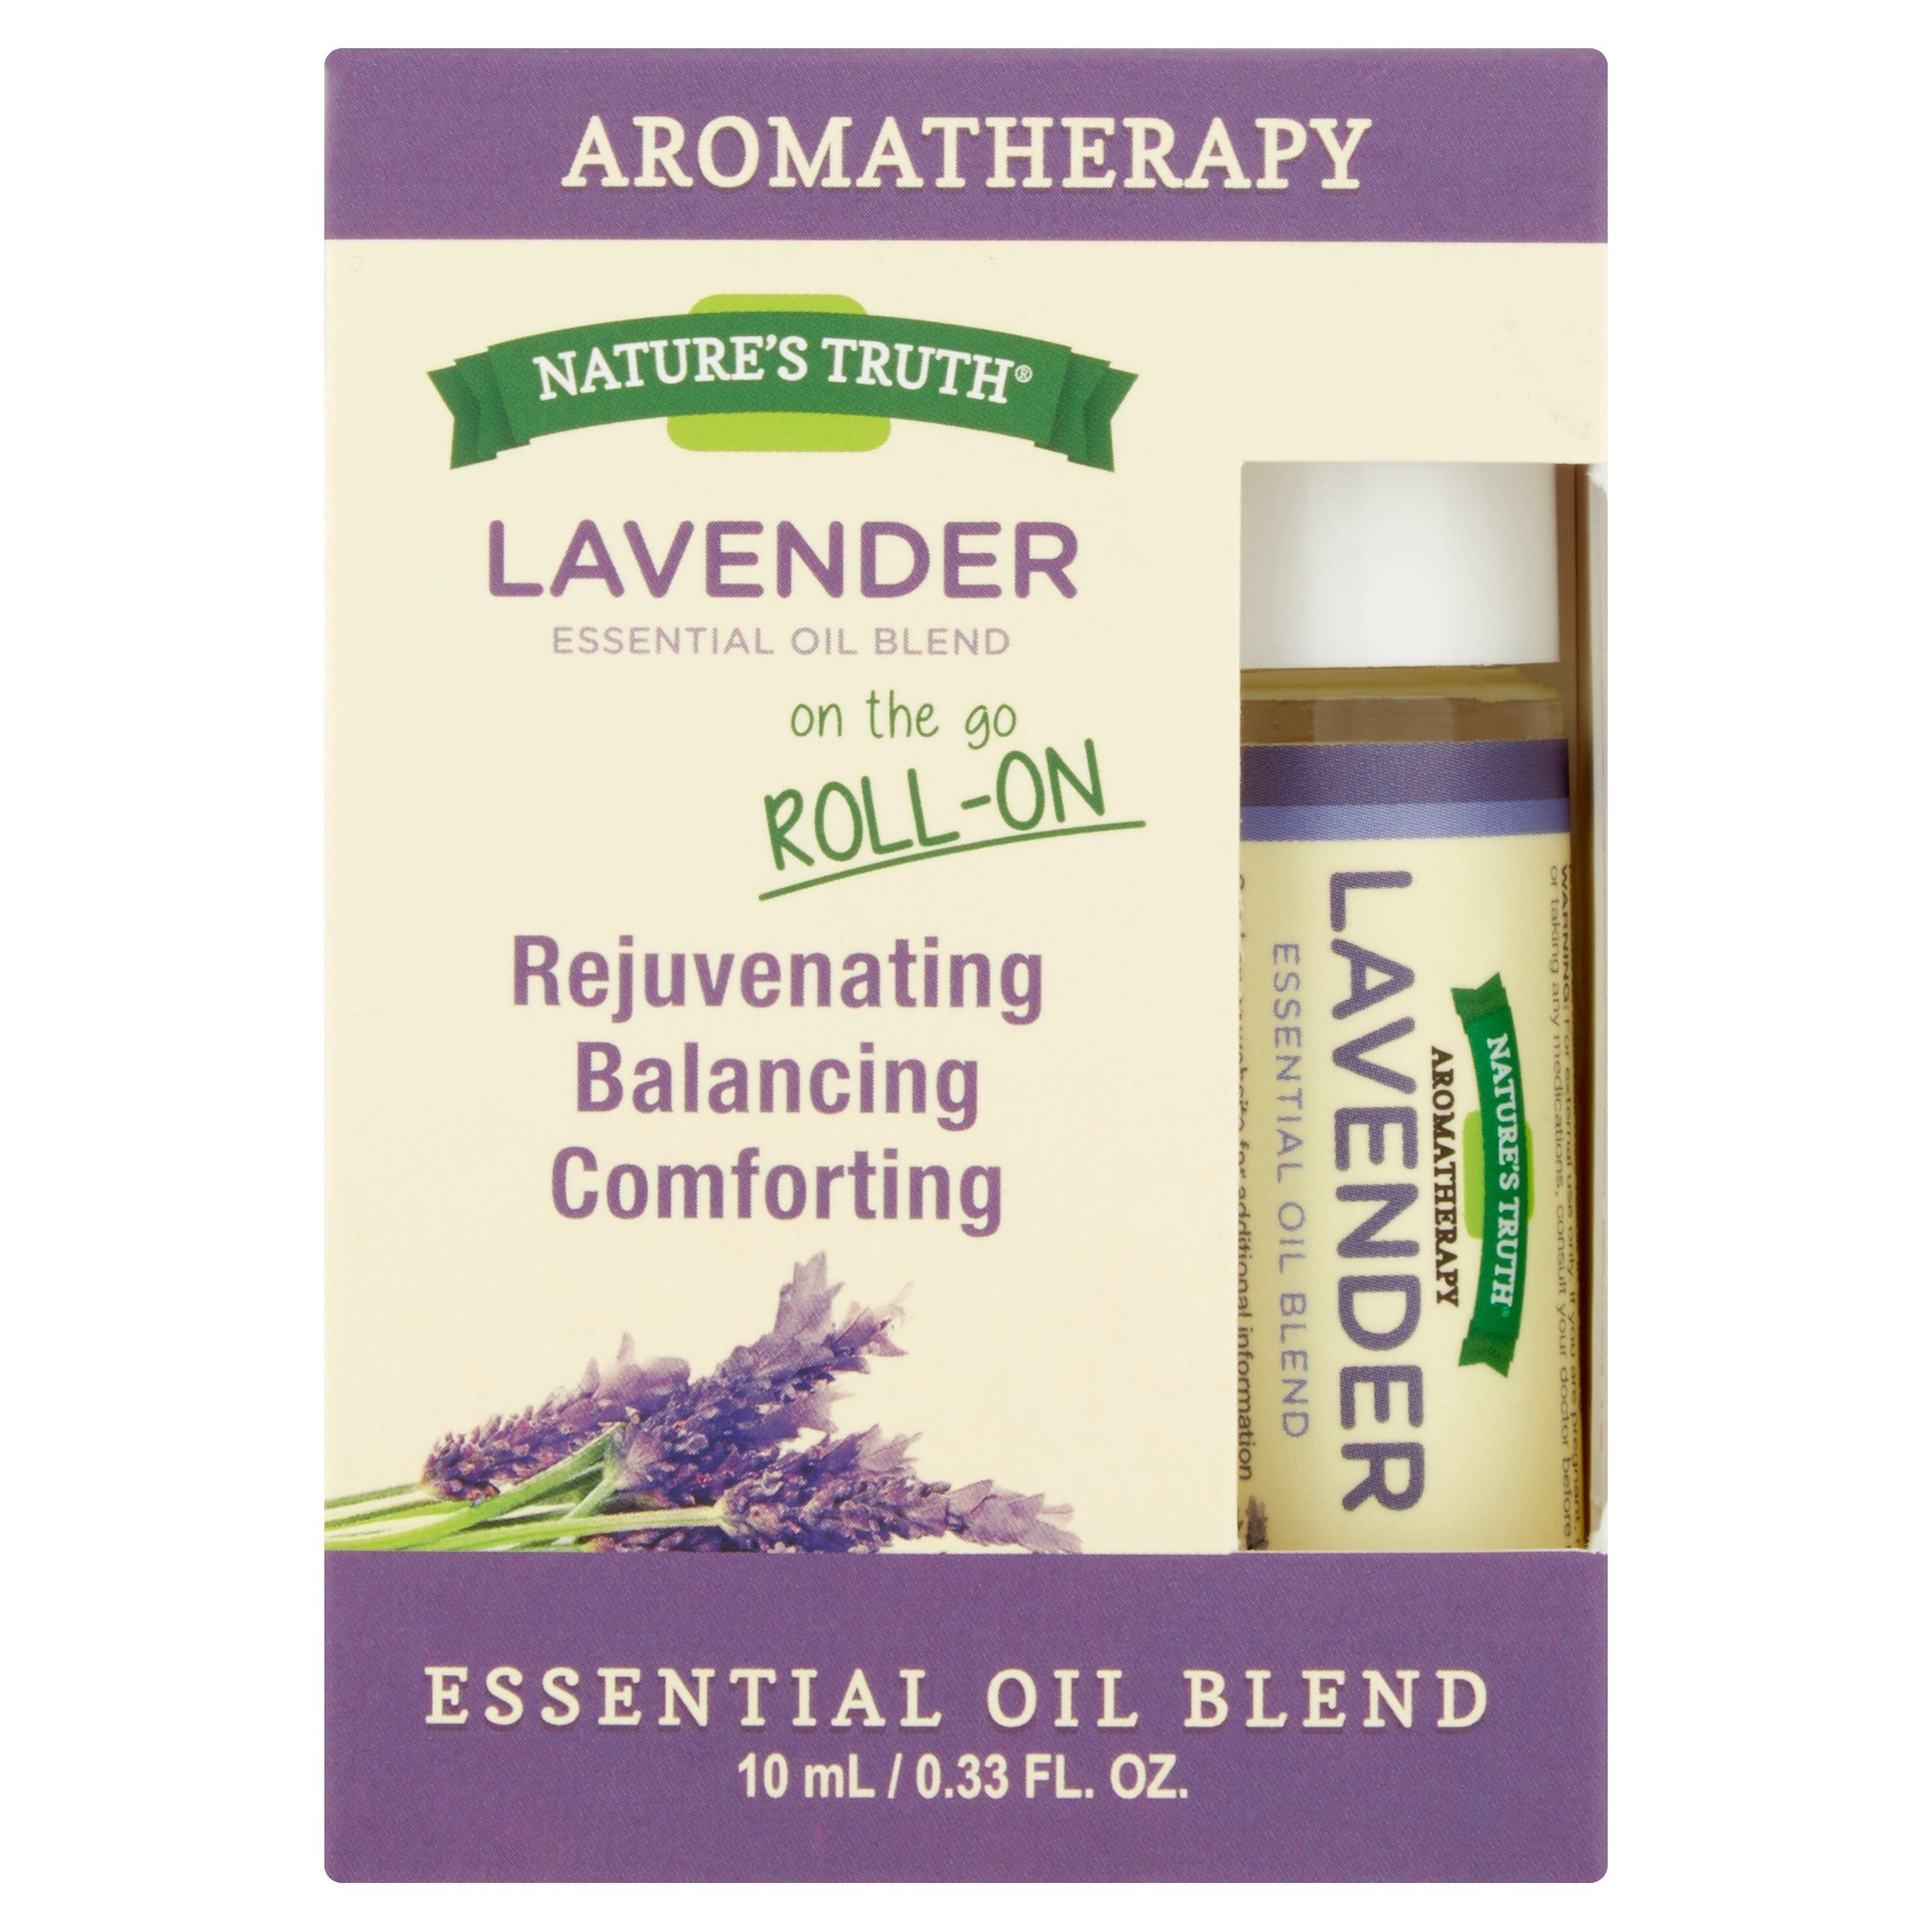 Nature's Truth Aromatherapy Lavender Essential Oil Roll-On, 0.33 Fl Oz